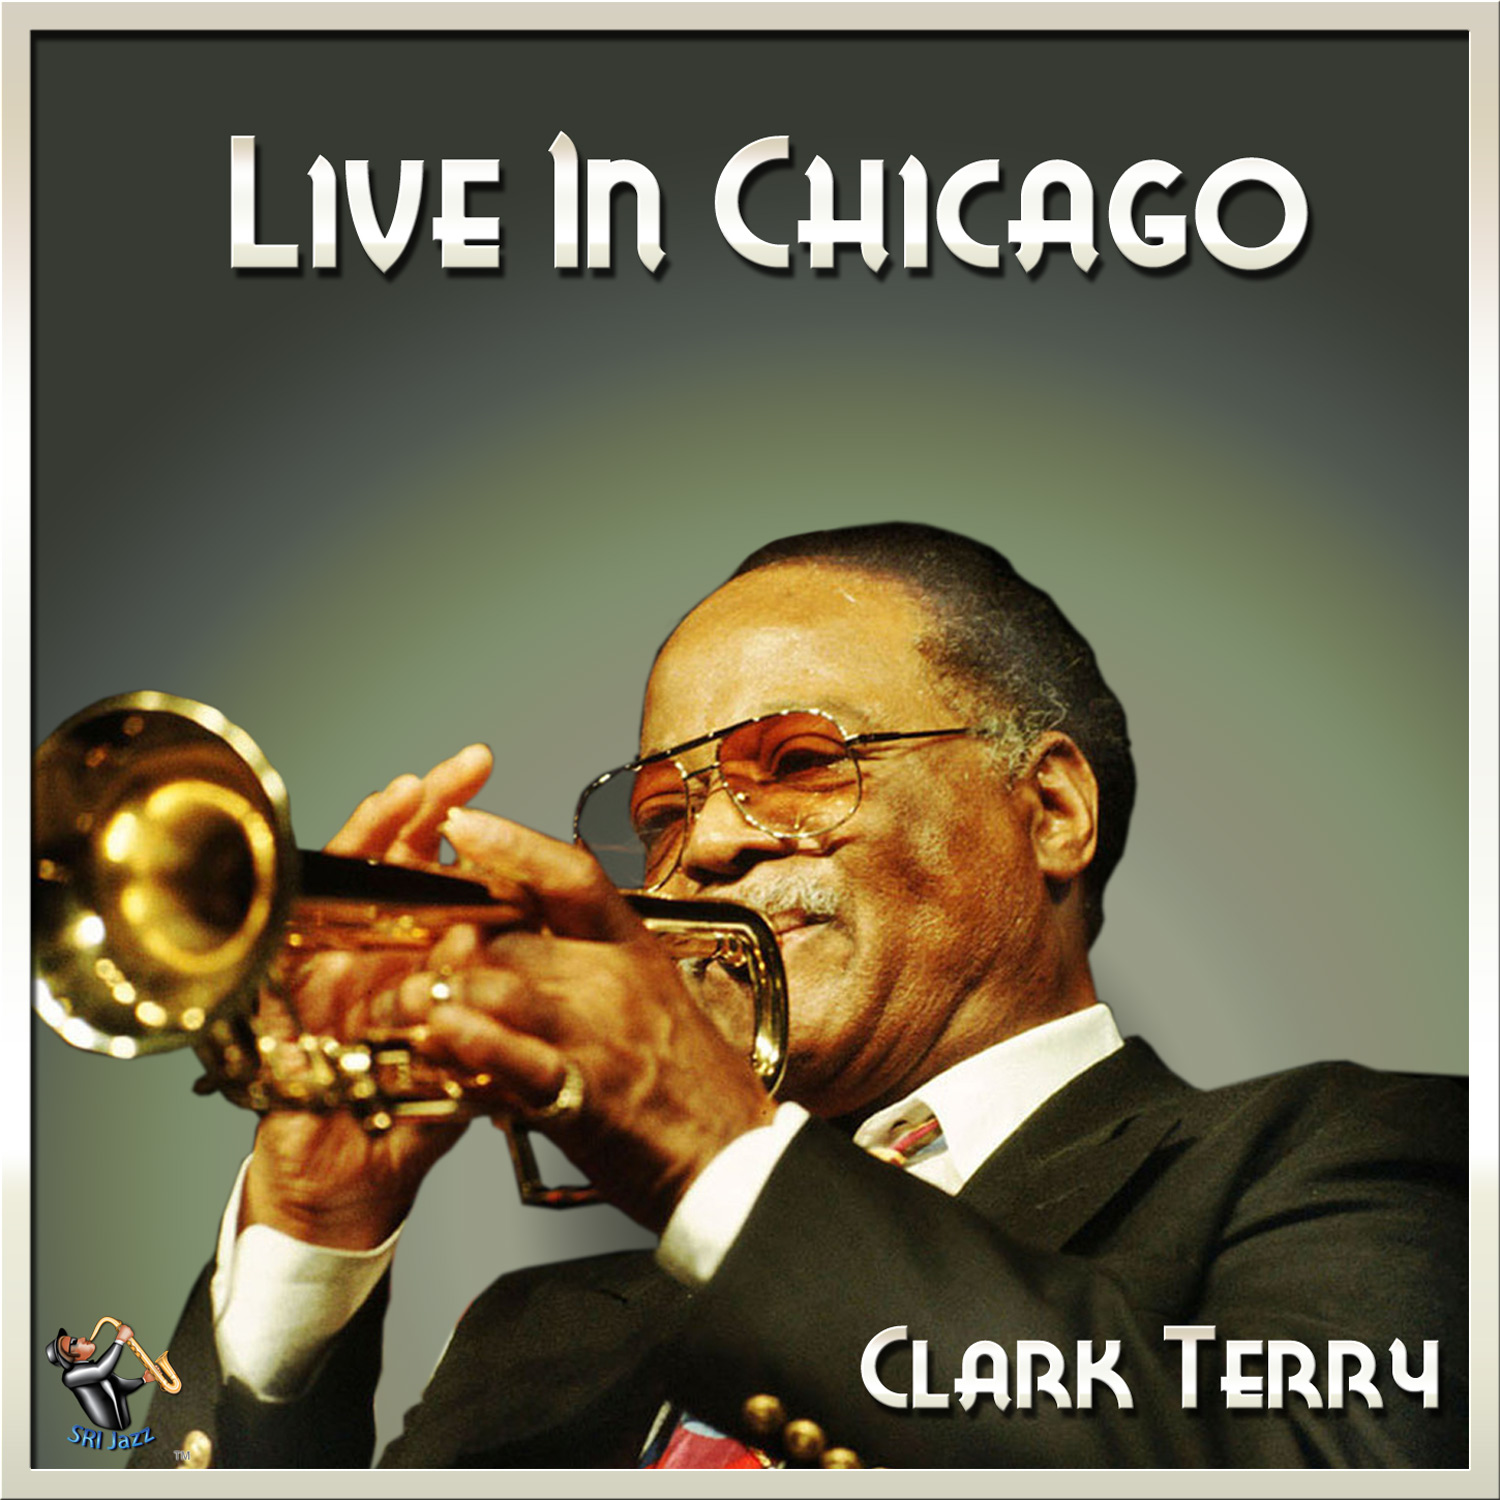 Mumbles additionally How The Cast Of Game Of Thrones Should Really Look also Aaron Goldberg Justin Kauflin Randy Ingram Cds Reviewed additionally Schools education likewise 3126211. on oscar peterson clark terry